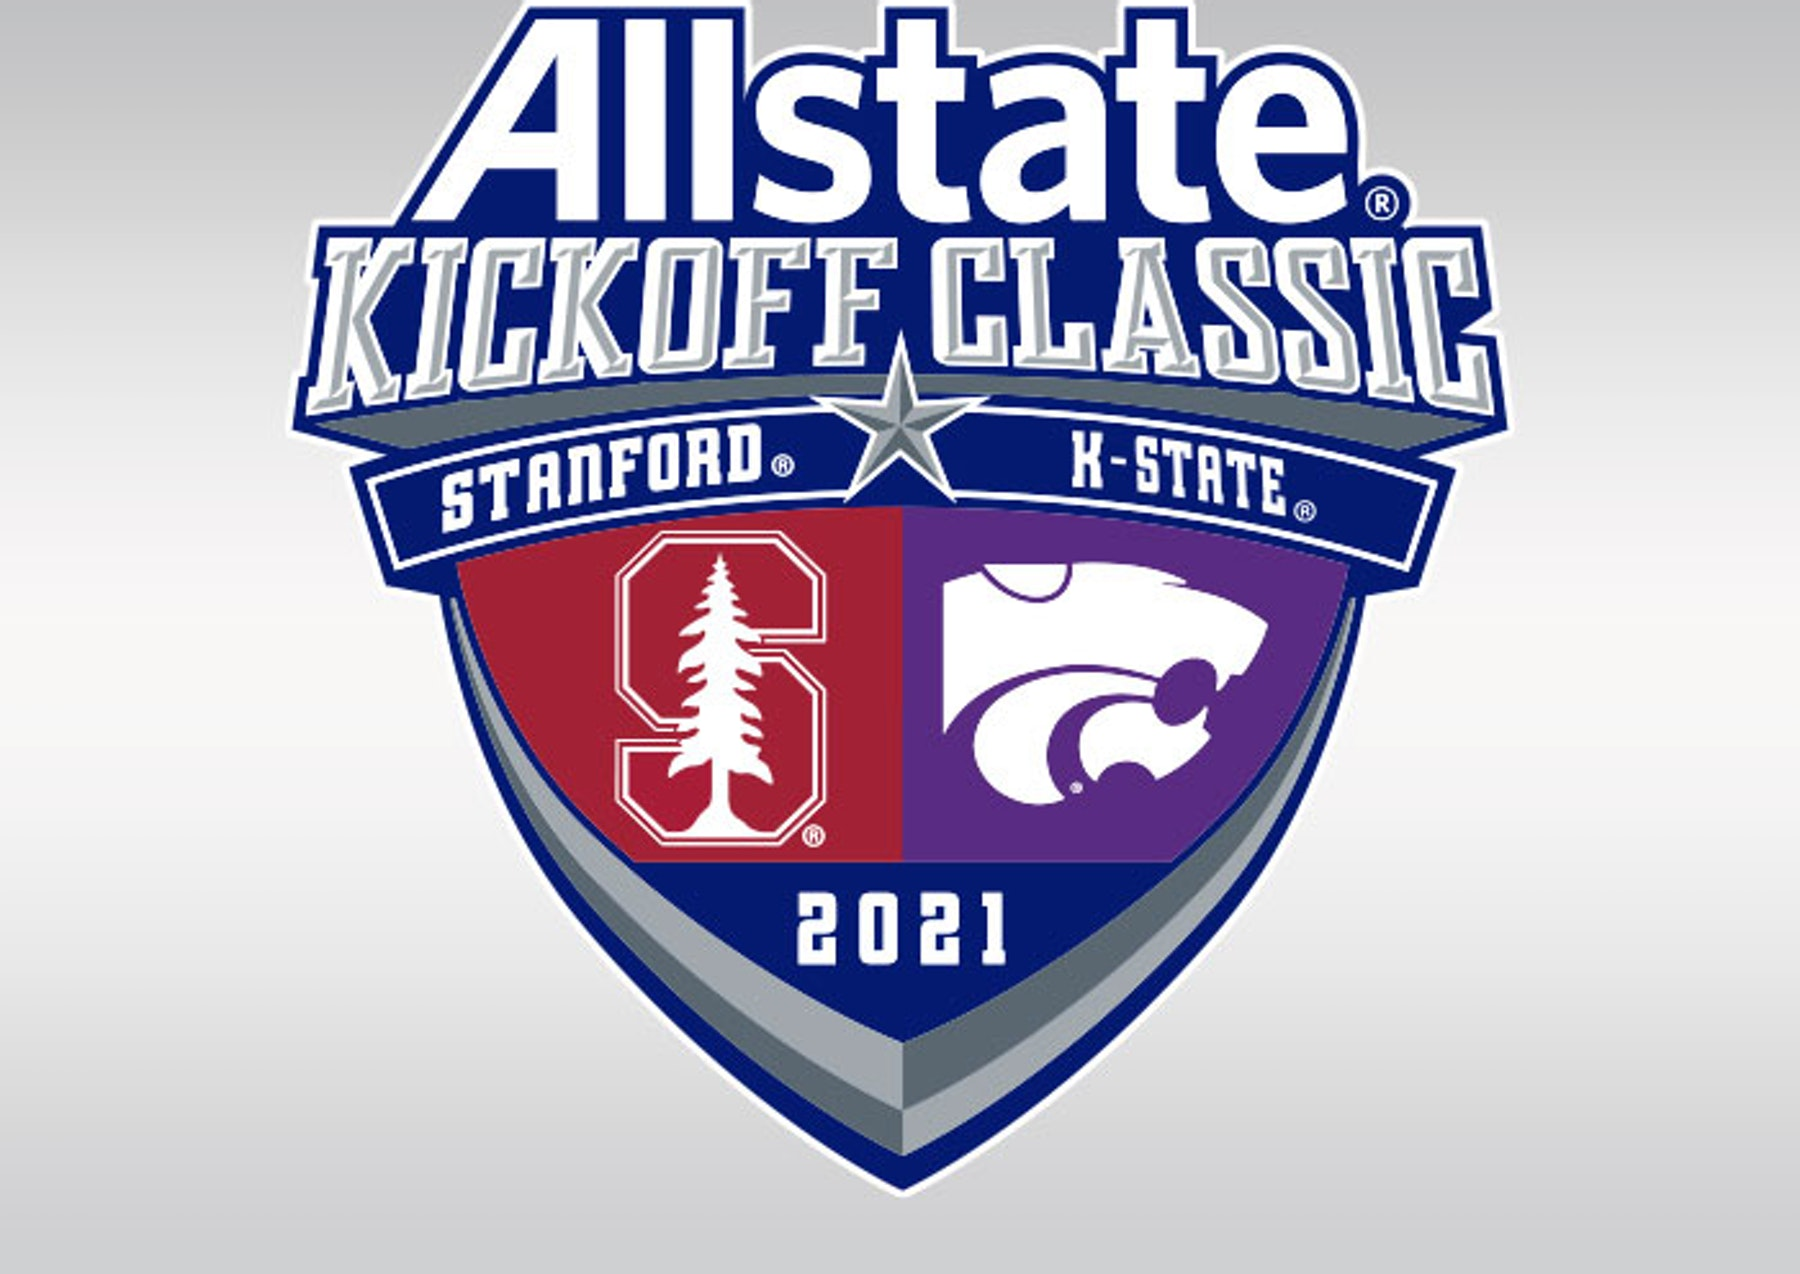 Allstate Kickoff Classic: Kansas State Wildcats vs. Stanford Cardinal